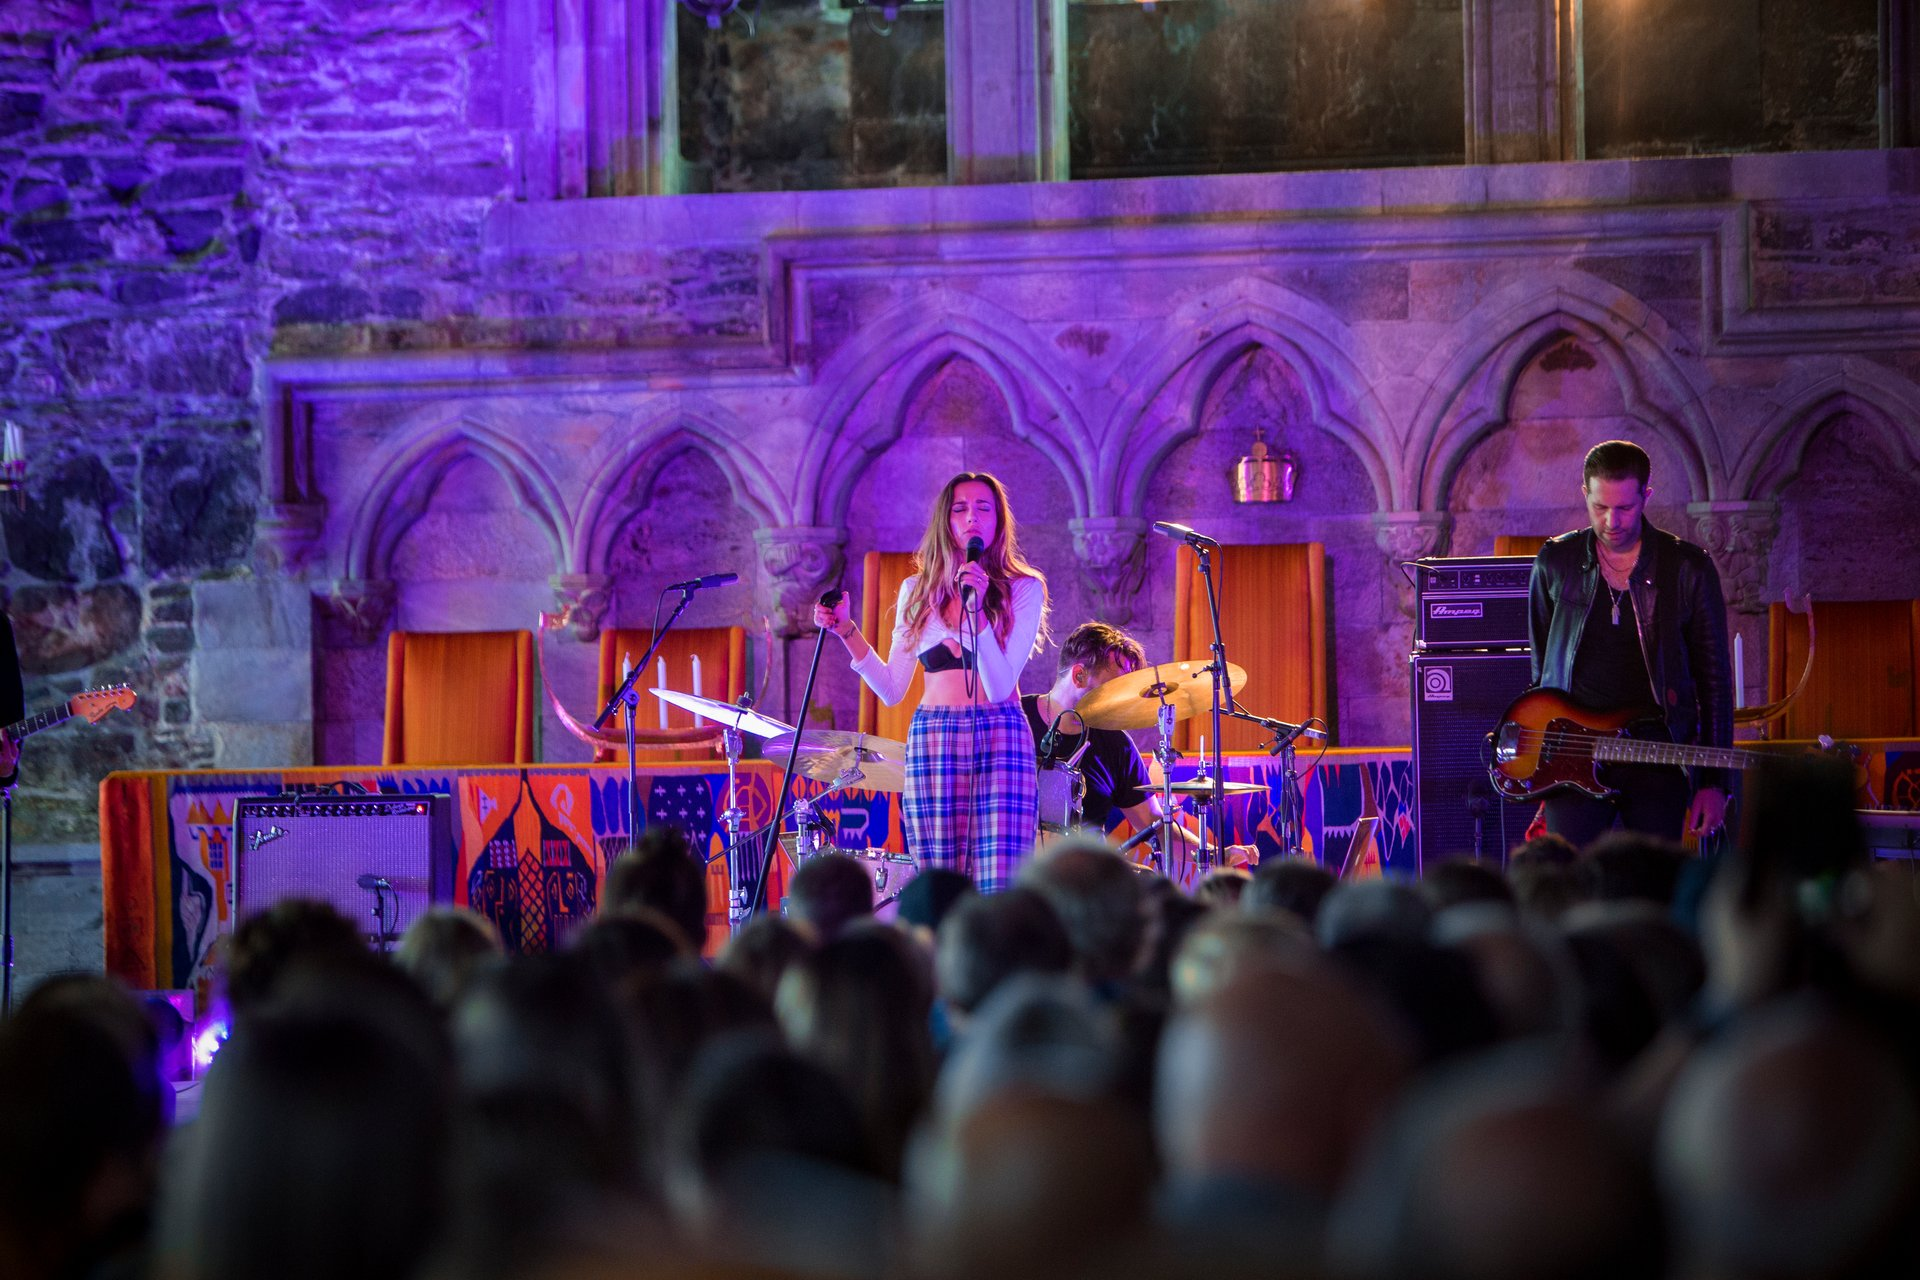 Cloves performing in the Haakon's Hall 2020